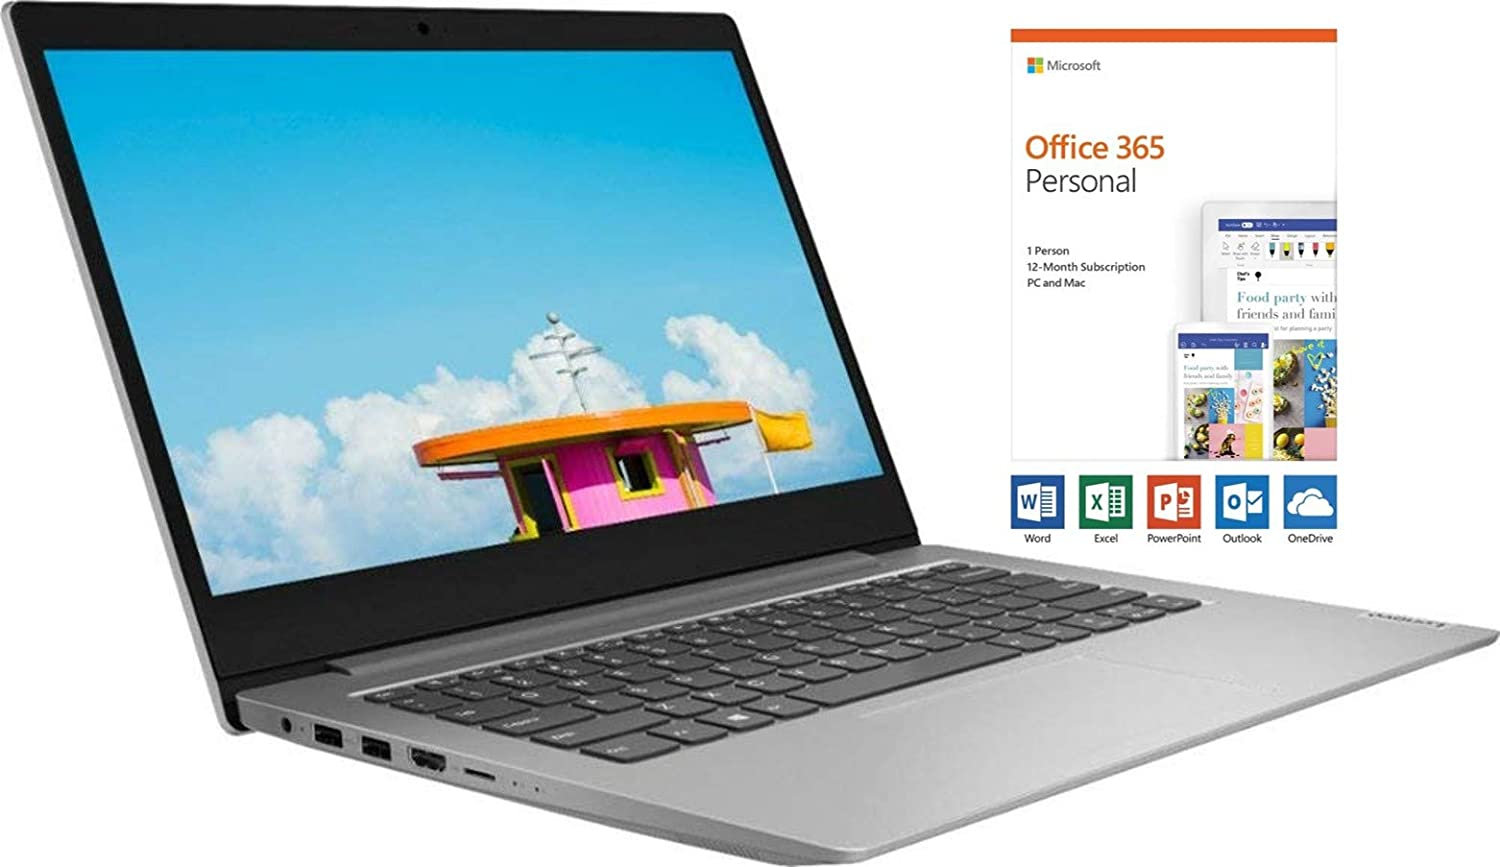 "Lenovo Ideapad 1 14"" HD Energy-efficient Widescreen LED Backlight Laptop, AMD A6-9220e Upto 2.4GHz, AMD Radeon R4, 4GB RAM, 64GB eMMC SSD, Bluetooth, HDMI, Windows 10, 1 Year Office 365 Personal"